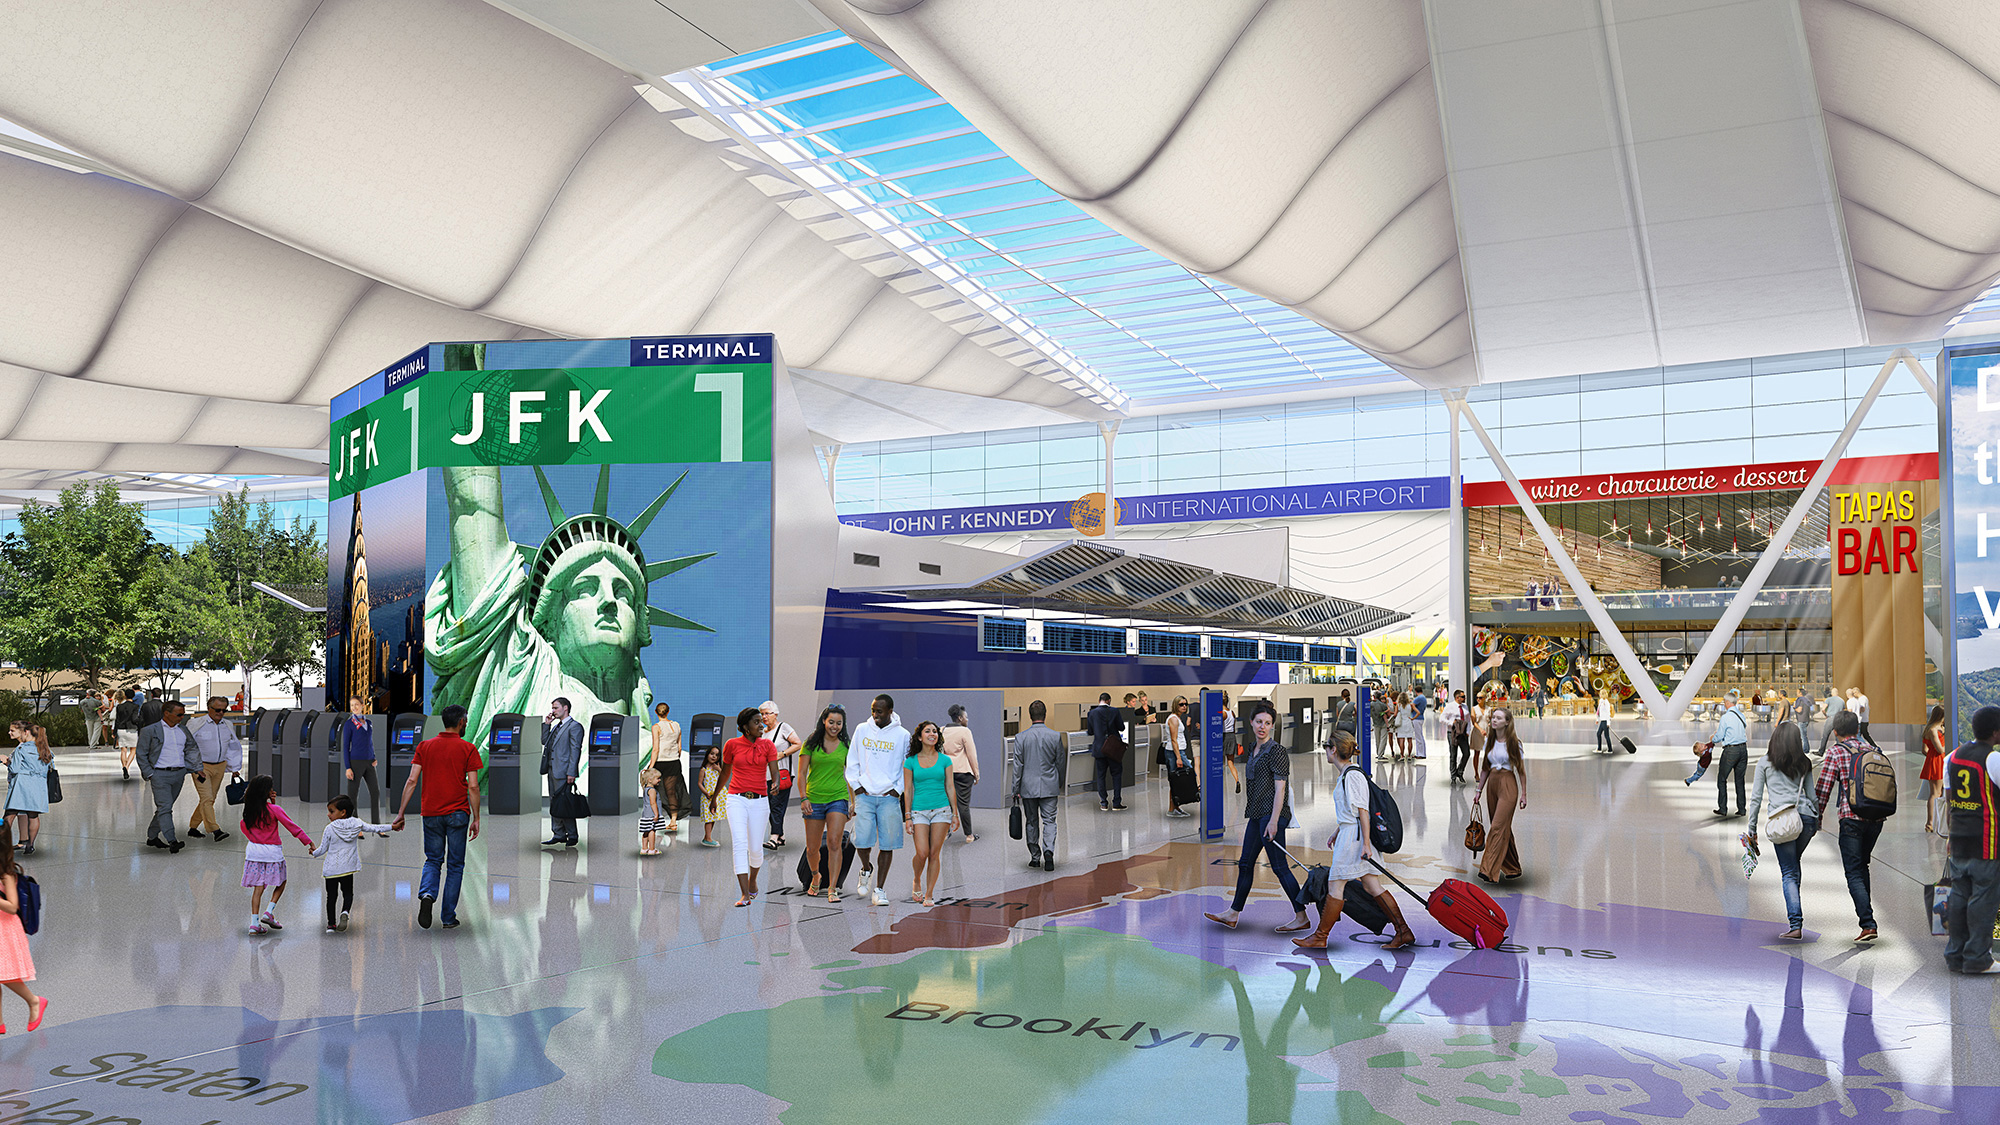 A rendering of the upcoming Terminal 1.